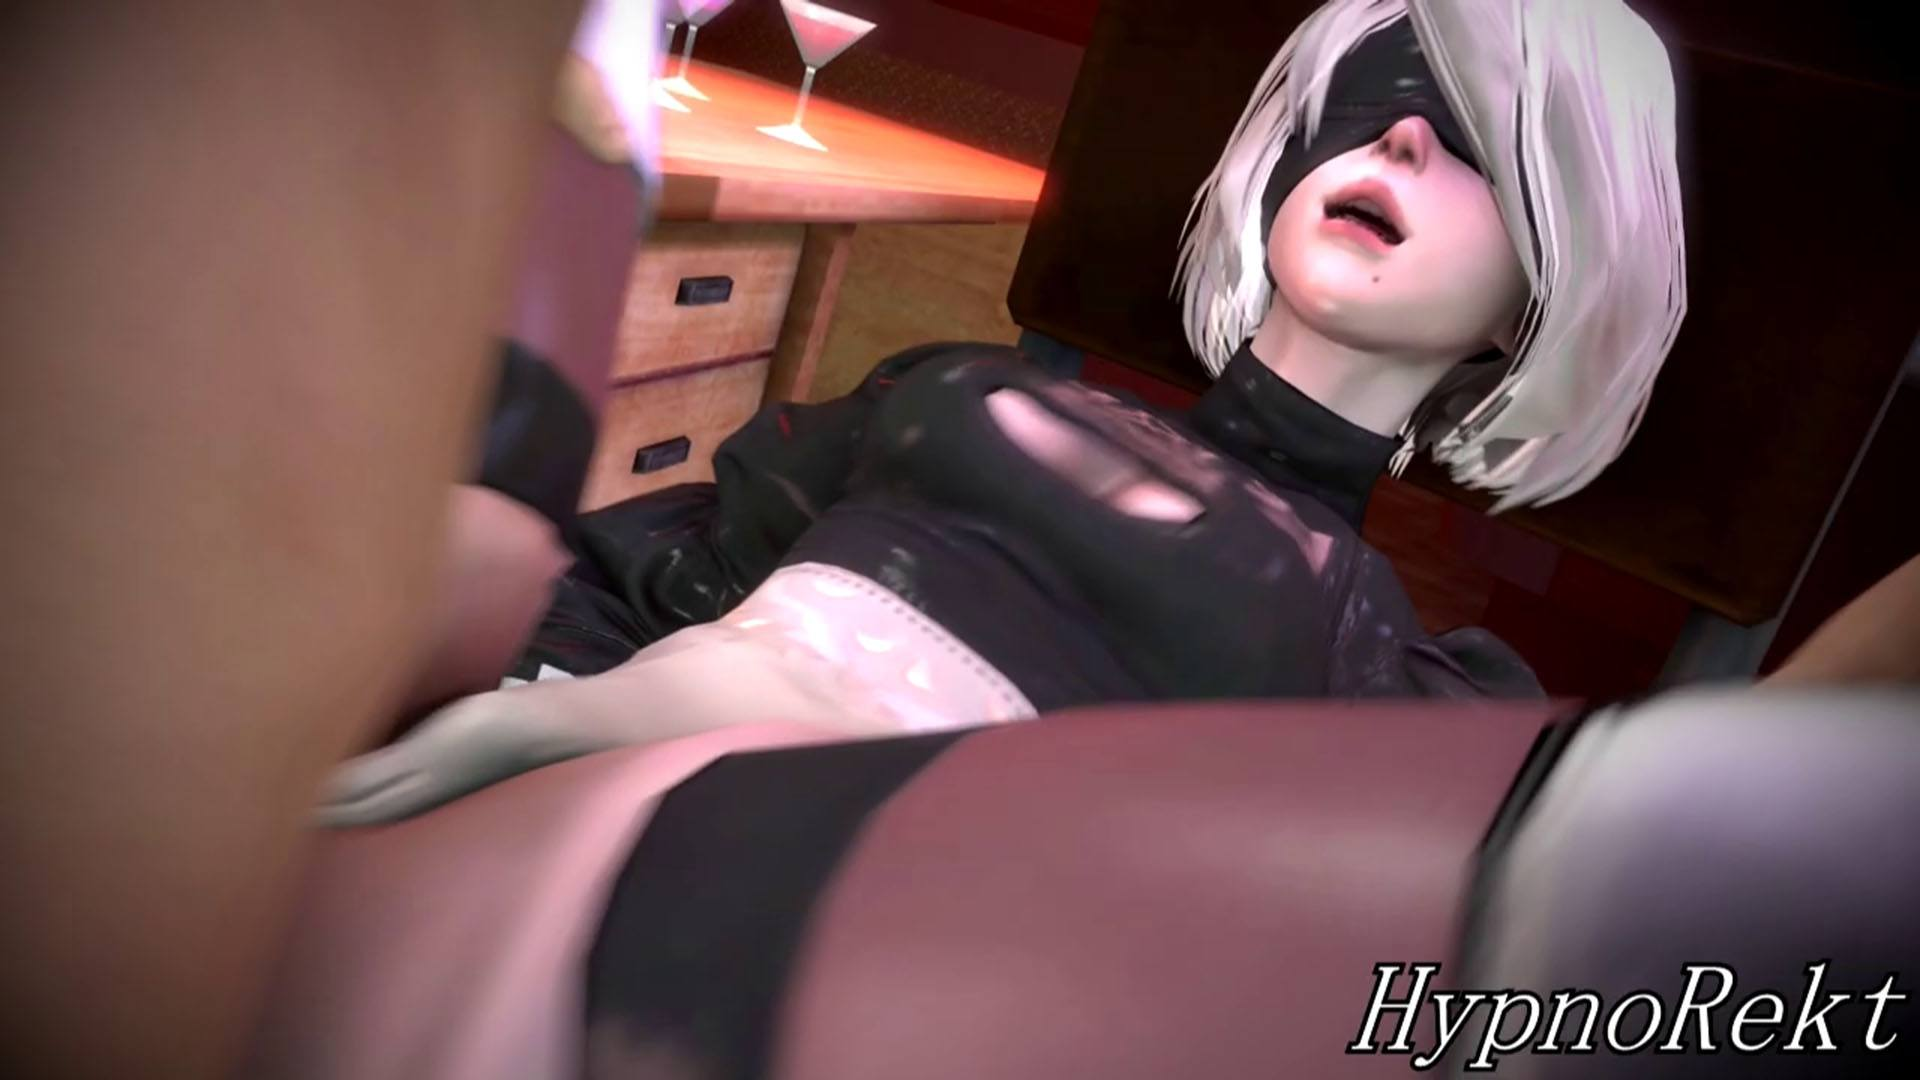 2b's up for anything - vr porn video - vrporn